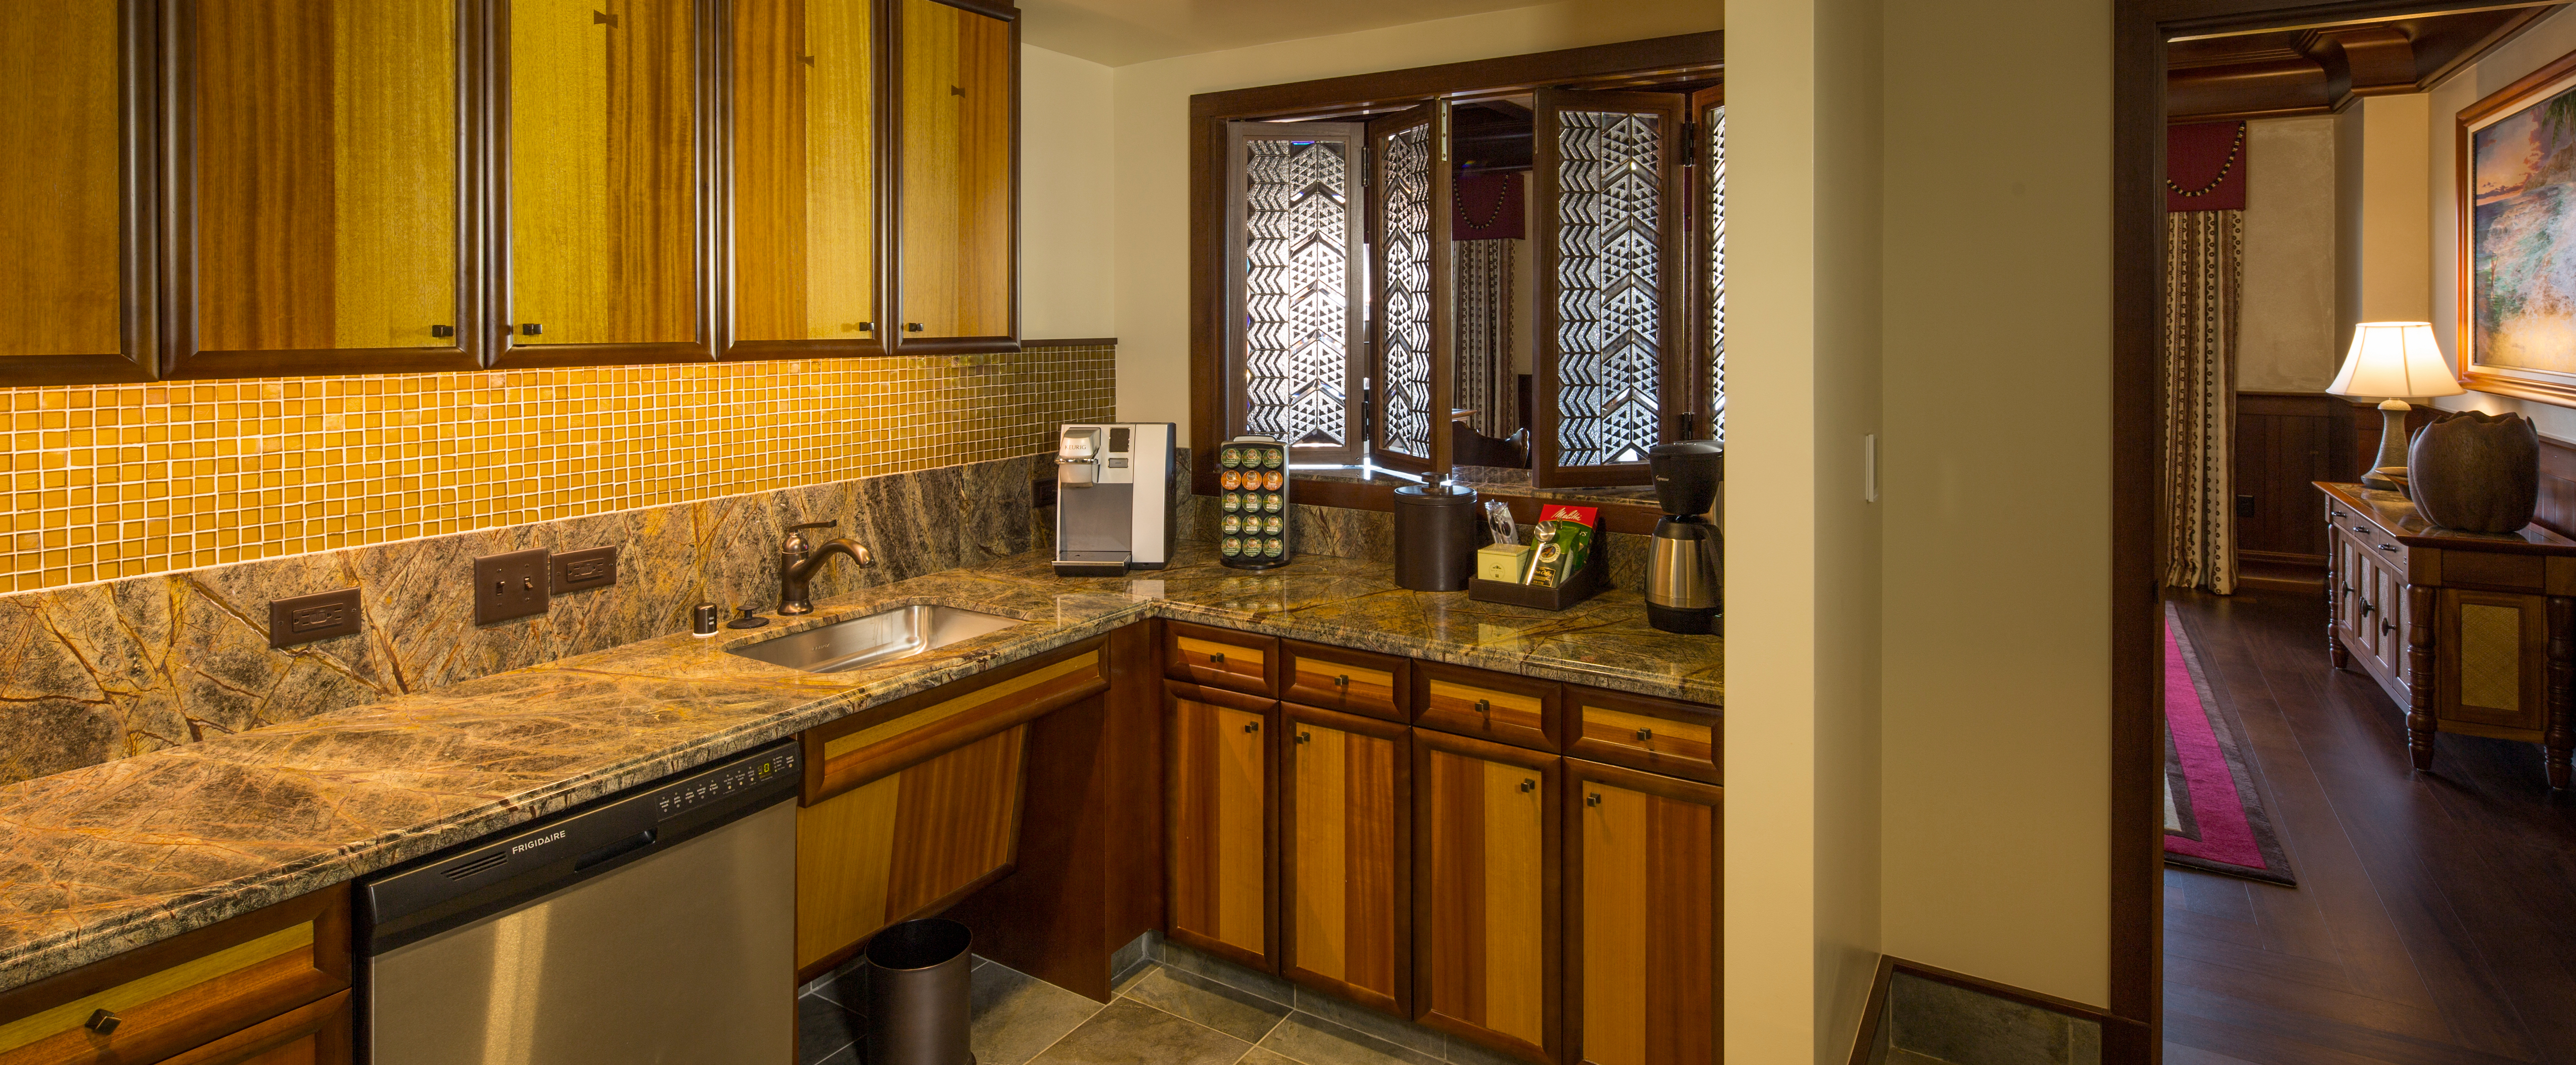 The dining area and butler pantry of the 2-Bedroom Suite at Aulani